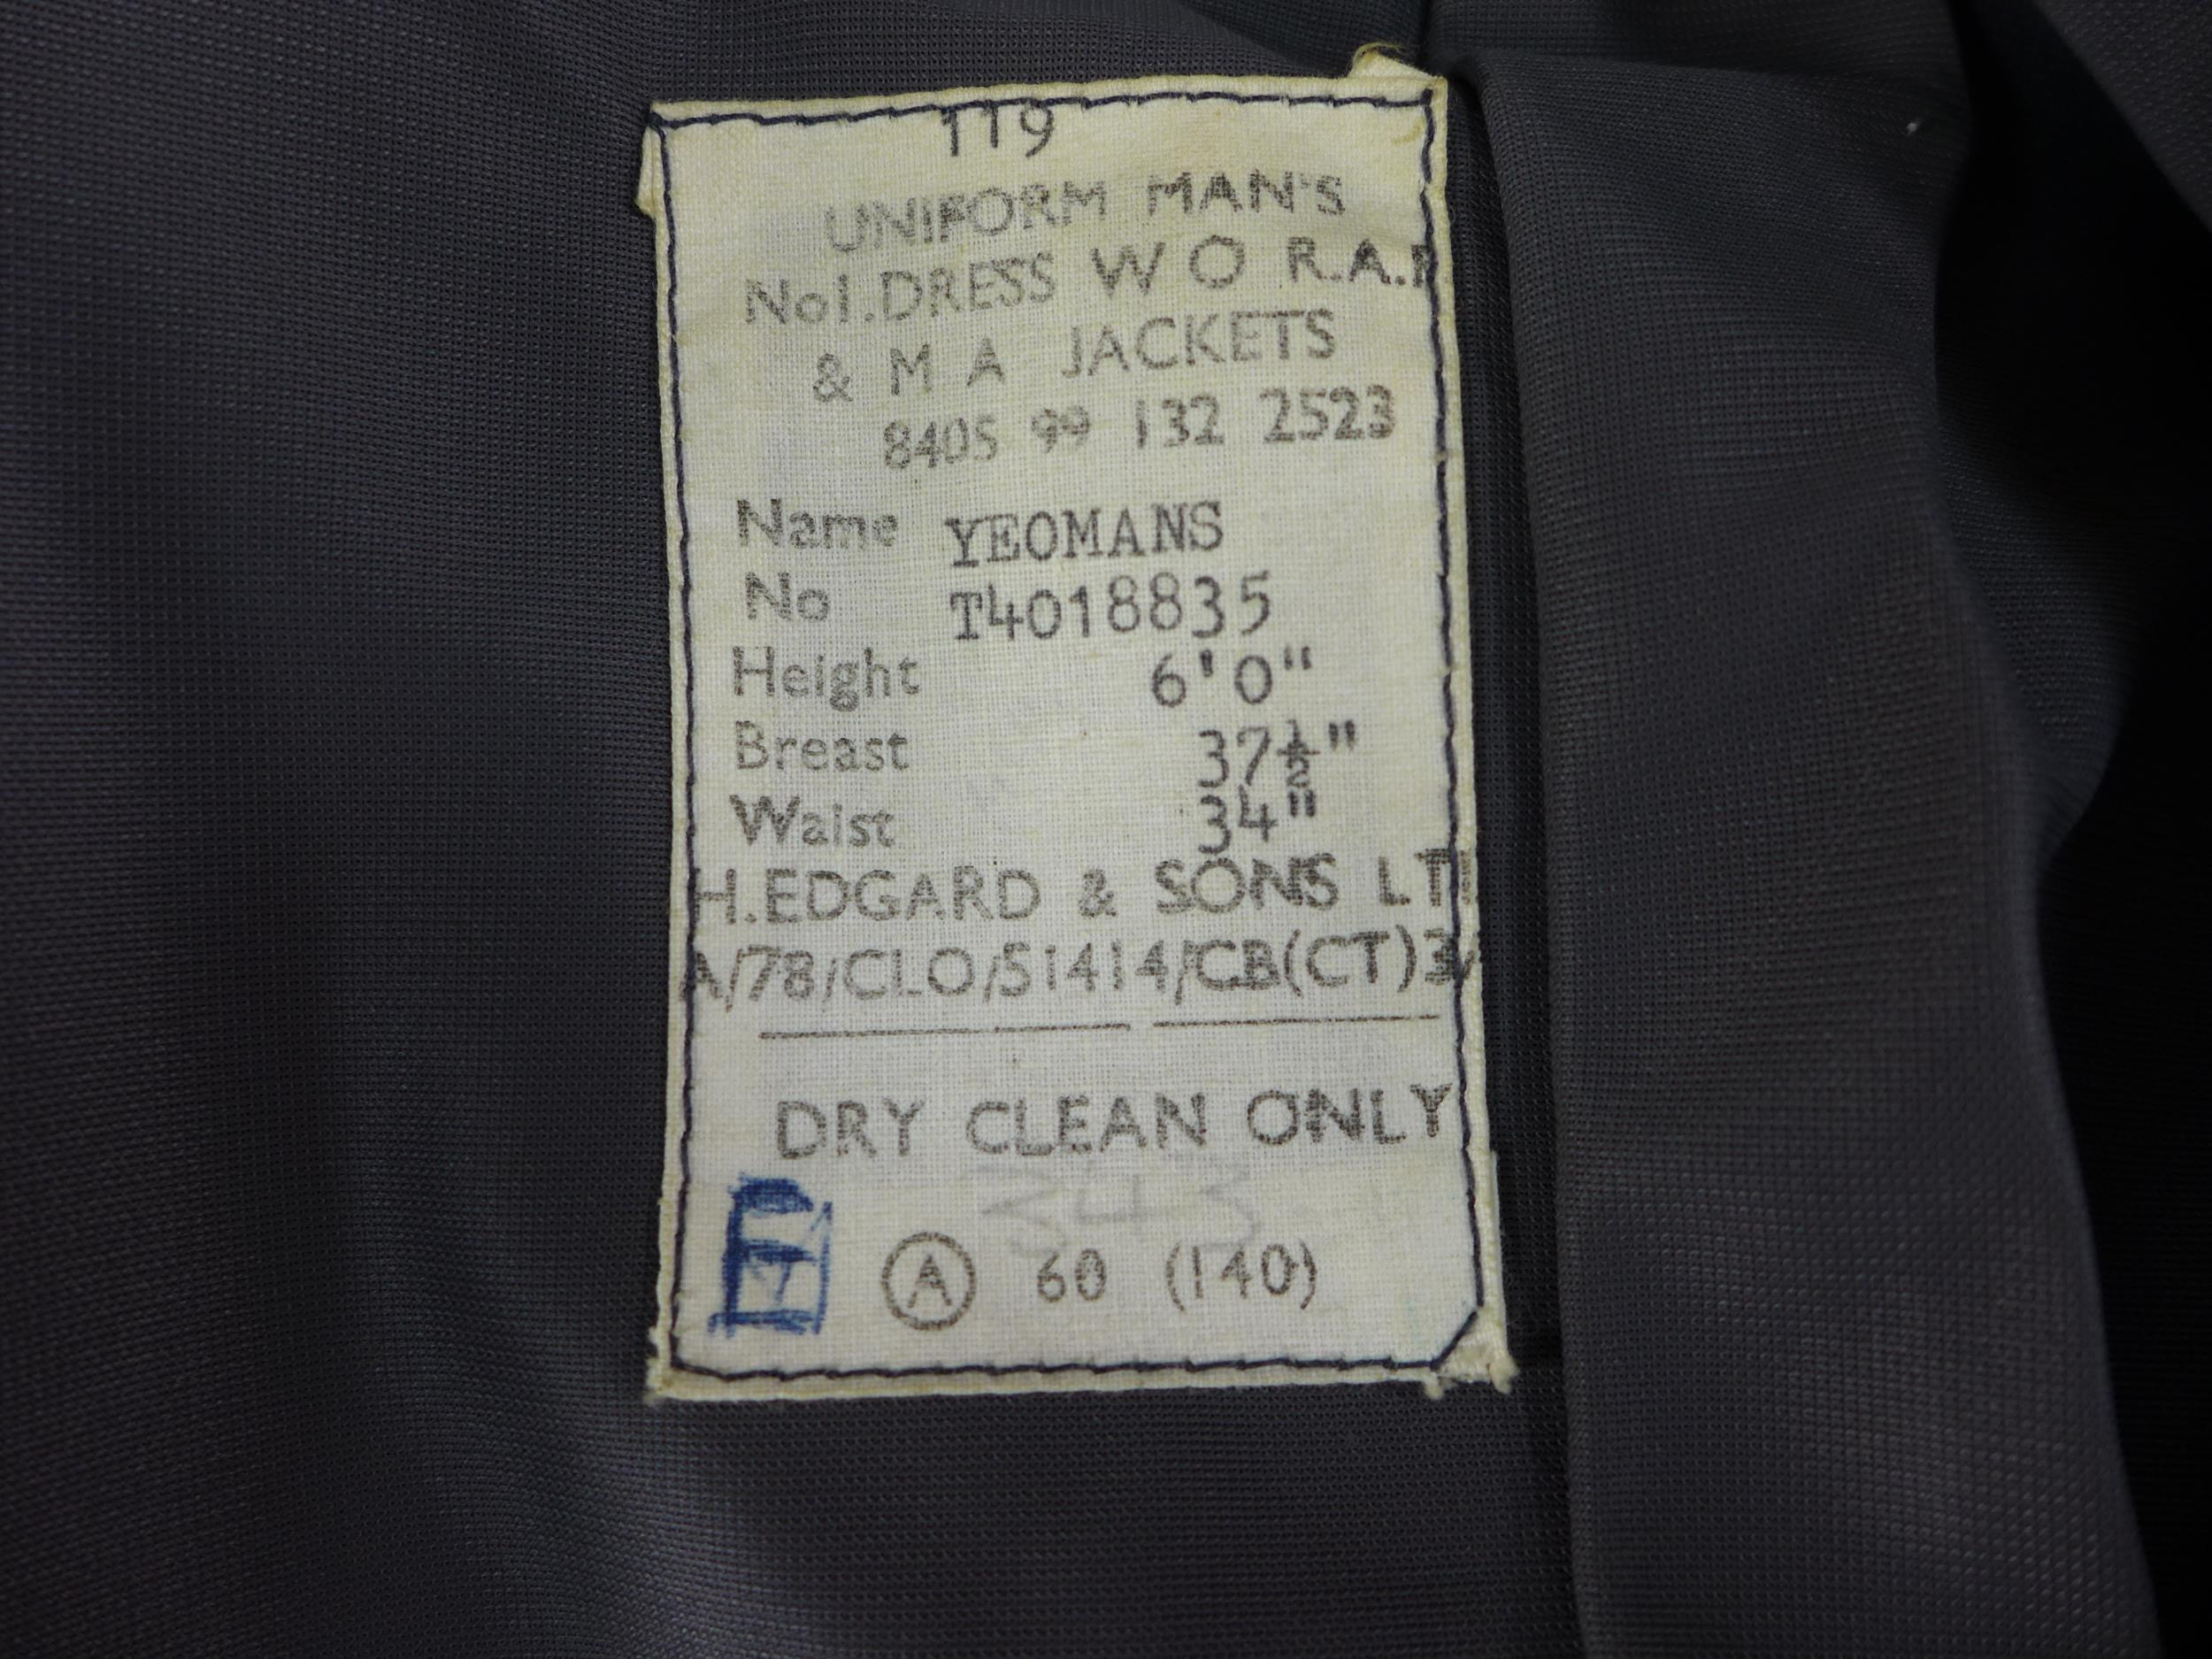 A RAF NO.1 DRESS WARRANT OFFICERS UNIFORM COMPRISING OF A JACKET AND TROUSERS, SEE IMAGE FOR SIZE - Image 3 of 3